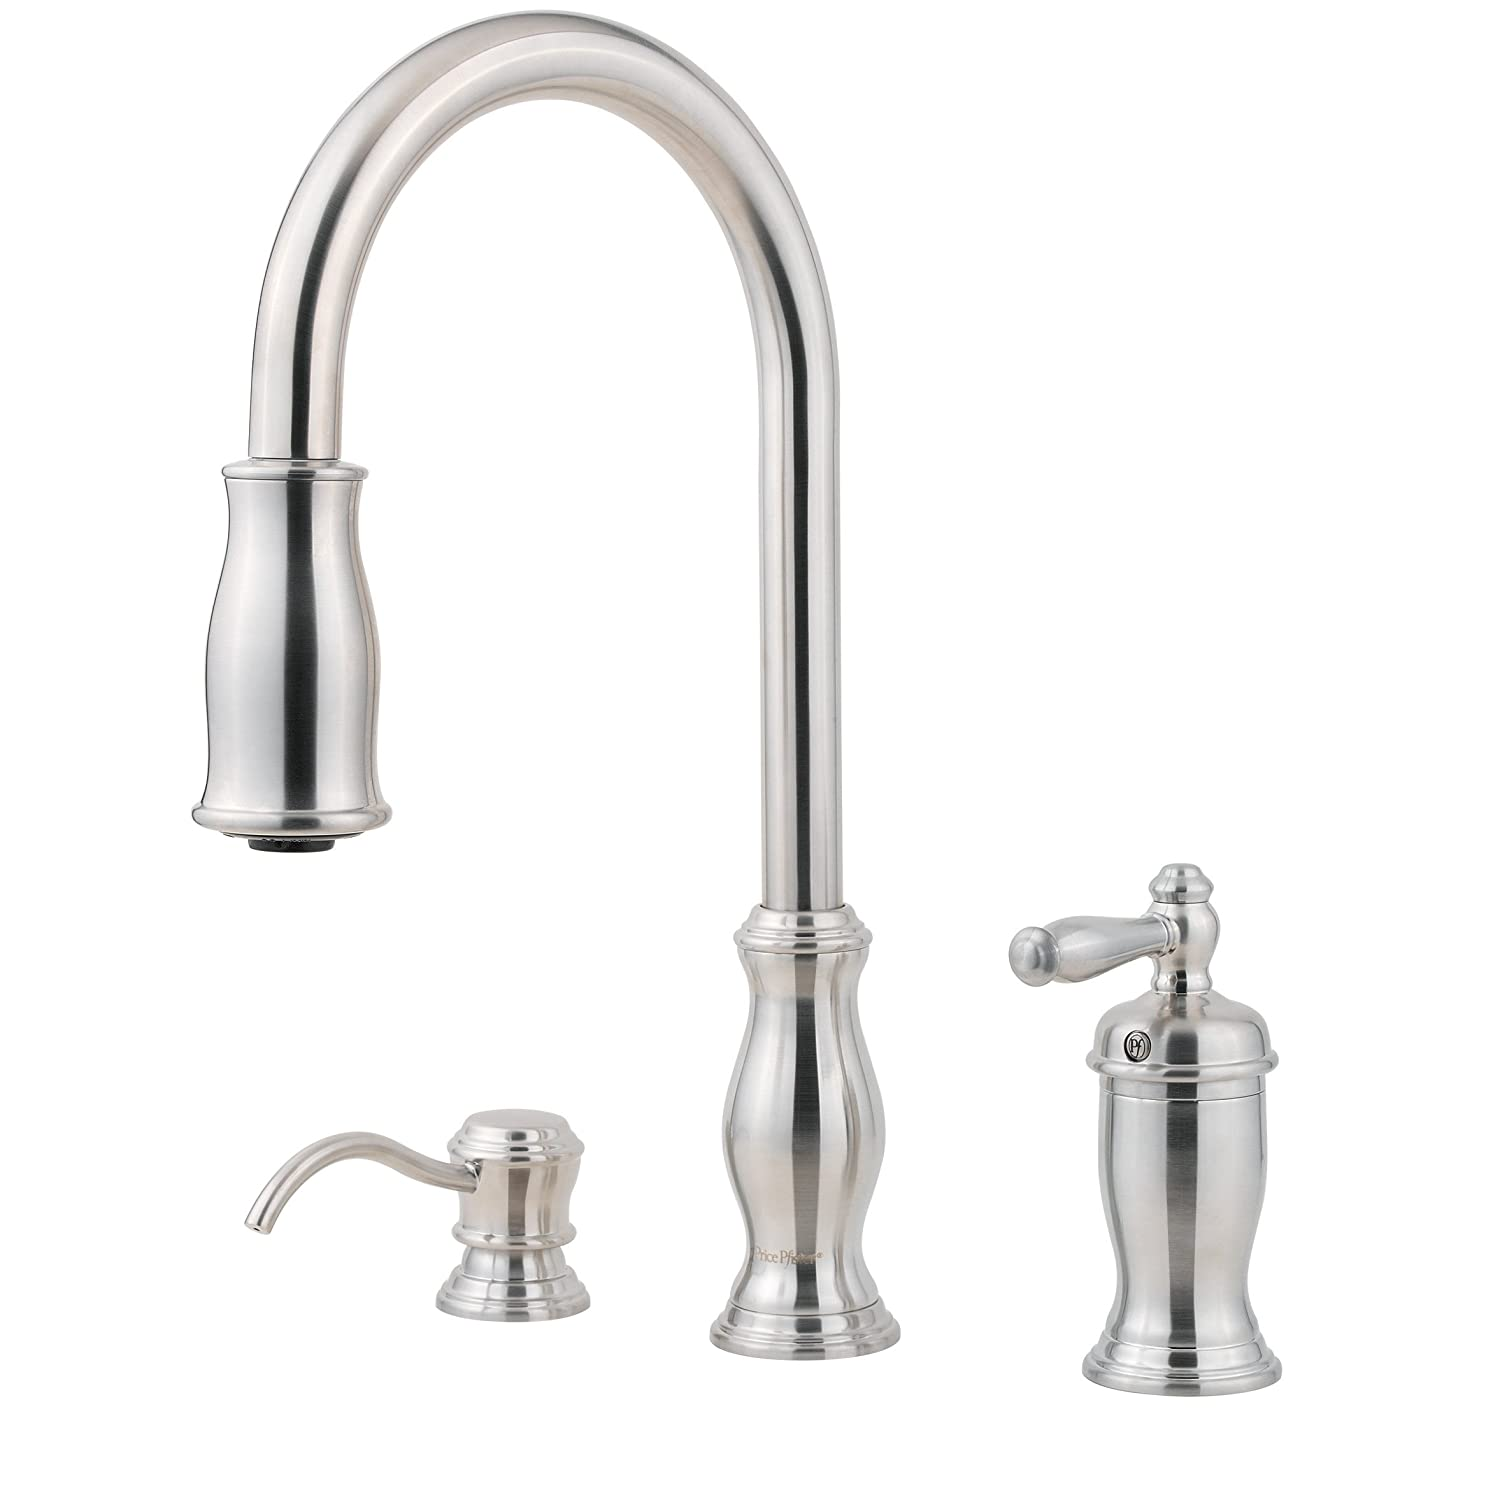 Pfister GT526TMS Hanover Separate 1-Handle Pull-Down Kitchen Faucet with Soap Dispenser in Stainless Steel